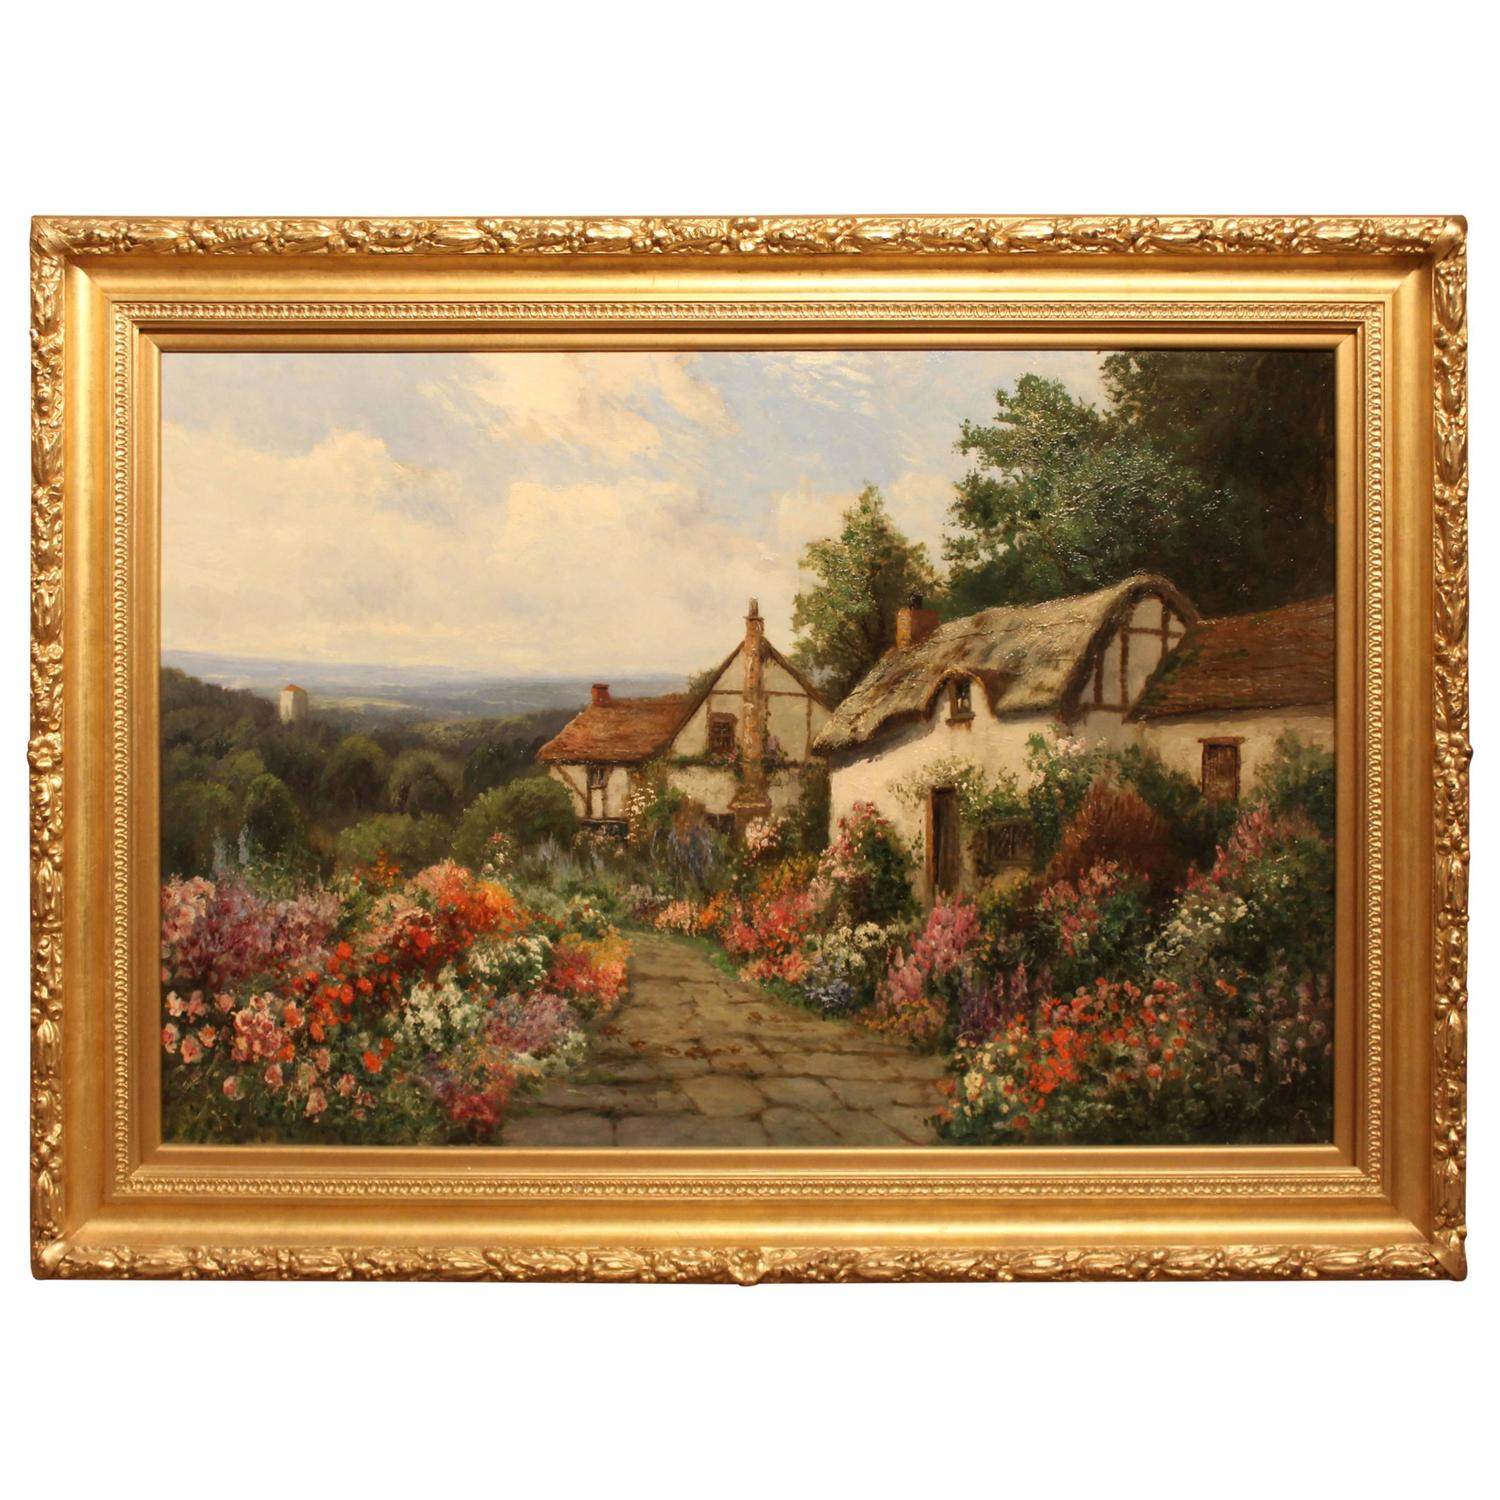 English Country Garden Oil Painting By Daniel Sherrin At 1stdibs